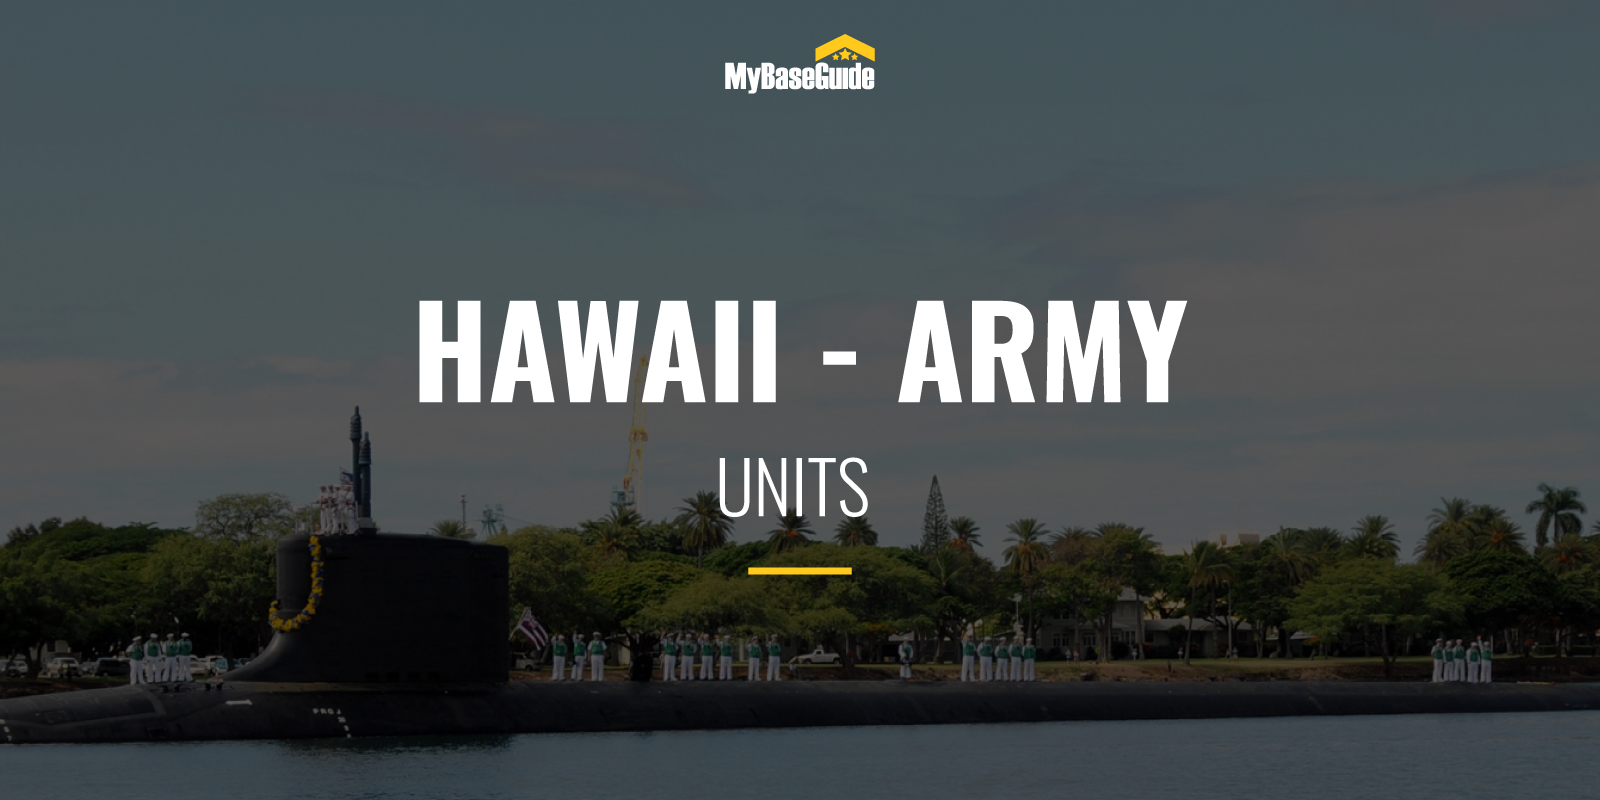 Hawaii - Army Units